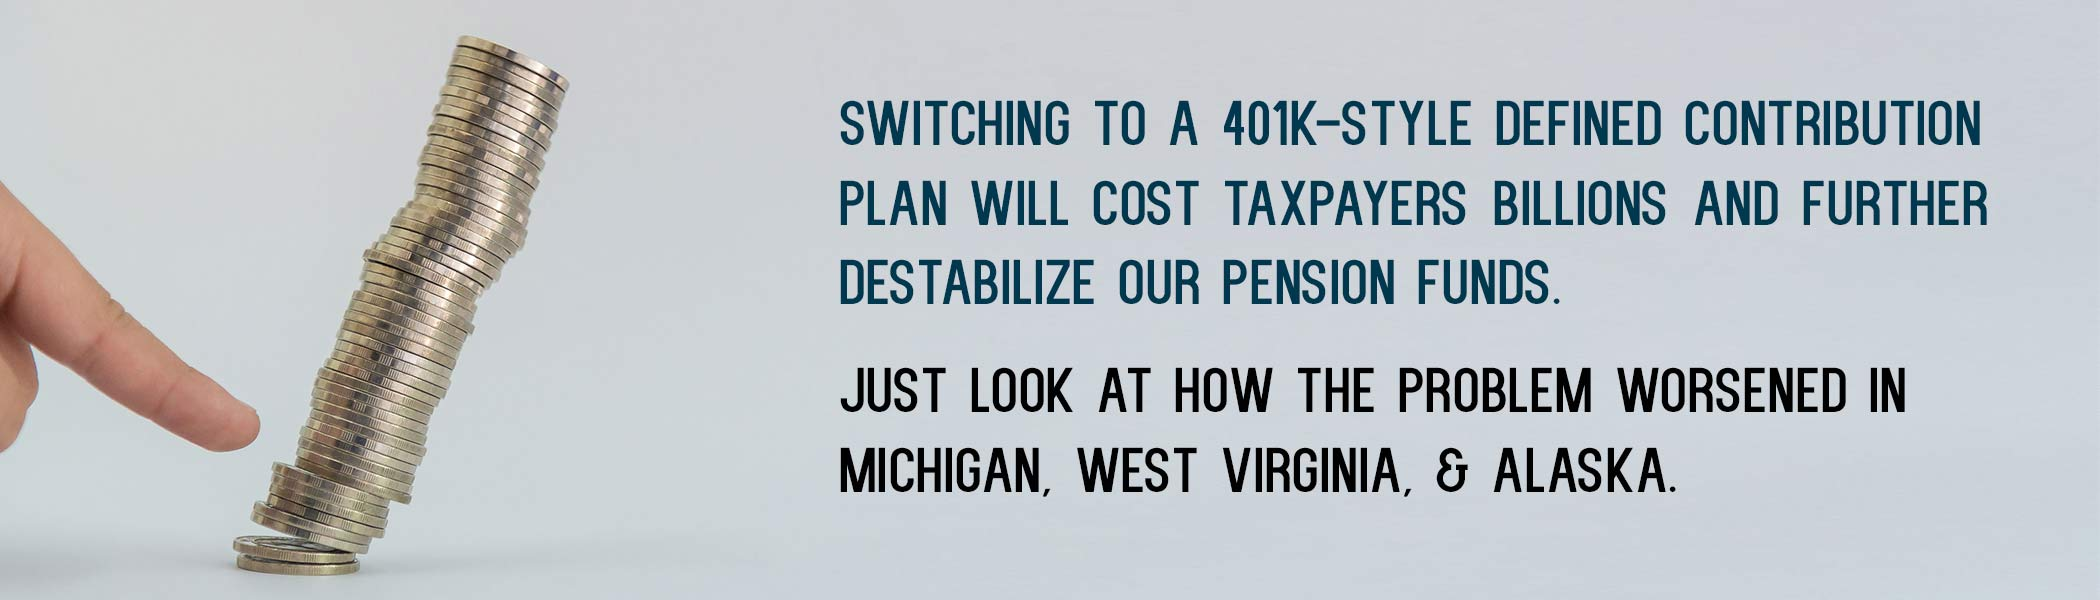 Switching to a 401k-style Defined Contribution Plan will cost taxpayers billions and further destabilize our pension funds. Just look at how the problem worsened in Michigan, West Virginia, & Alaska.